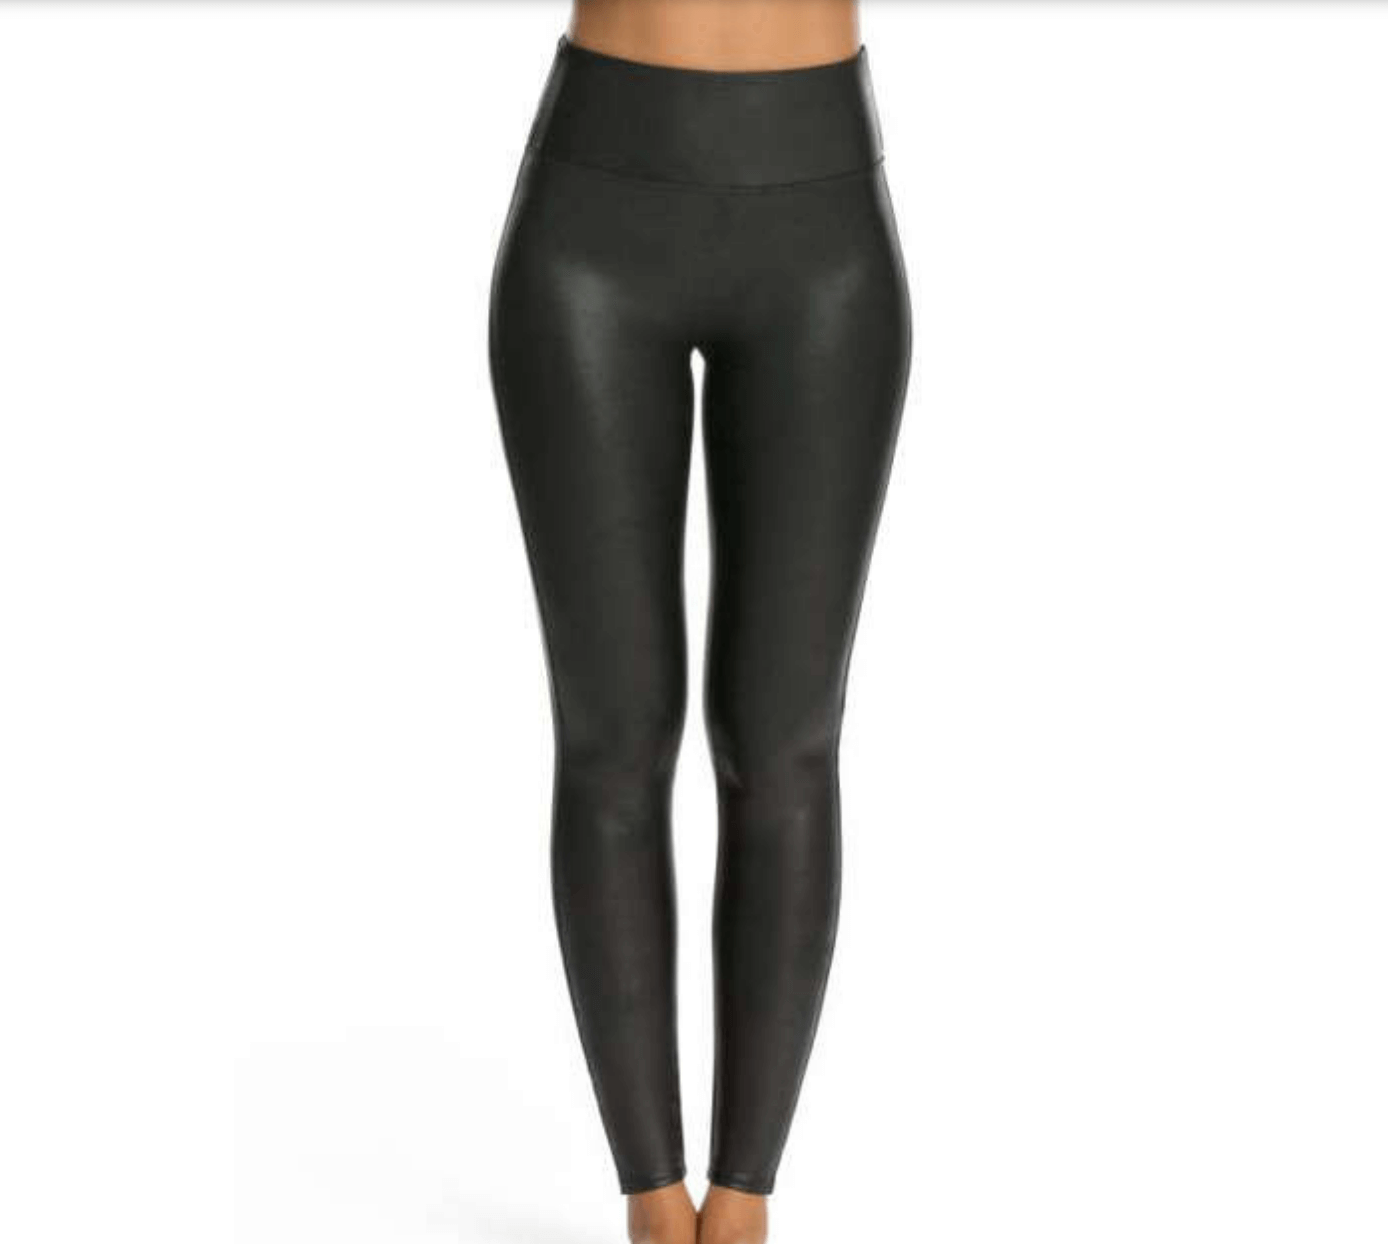 a8b7526aa0cc78 10 Best Faux Leather Leggings That Look Just Like The Real Thing